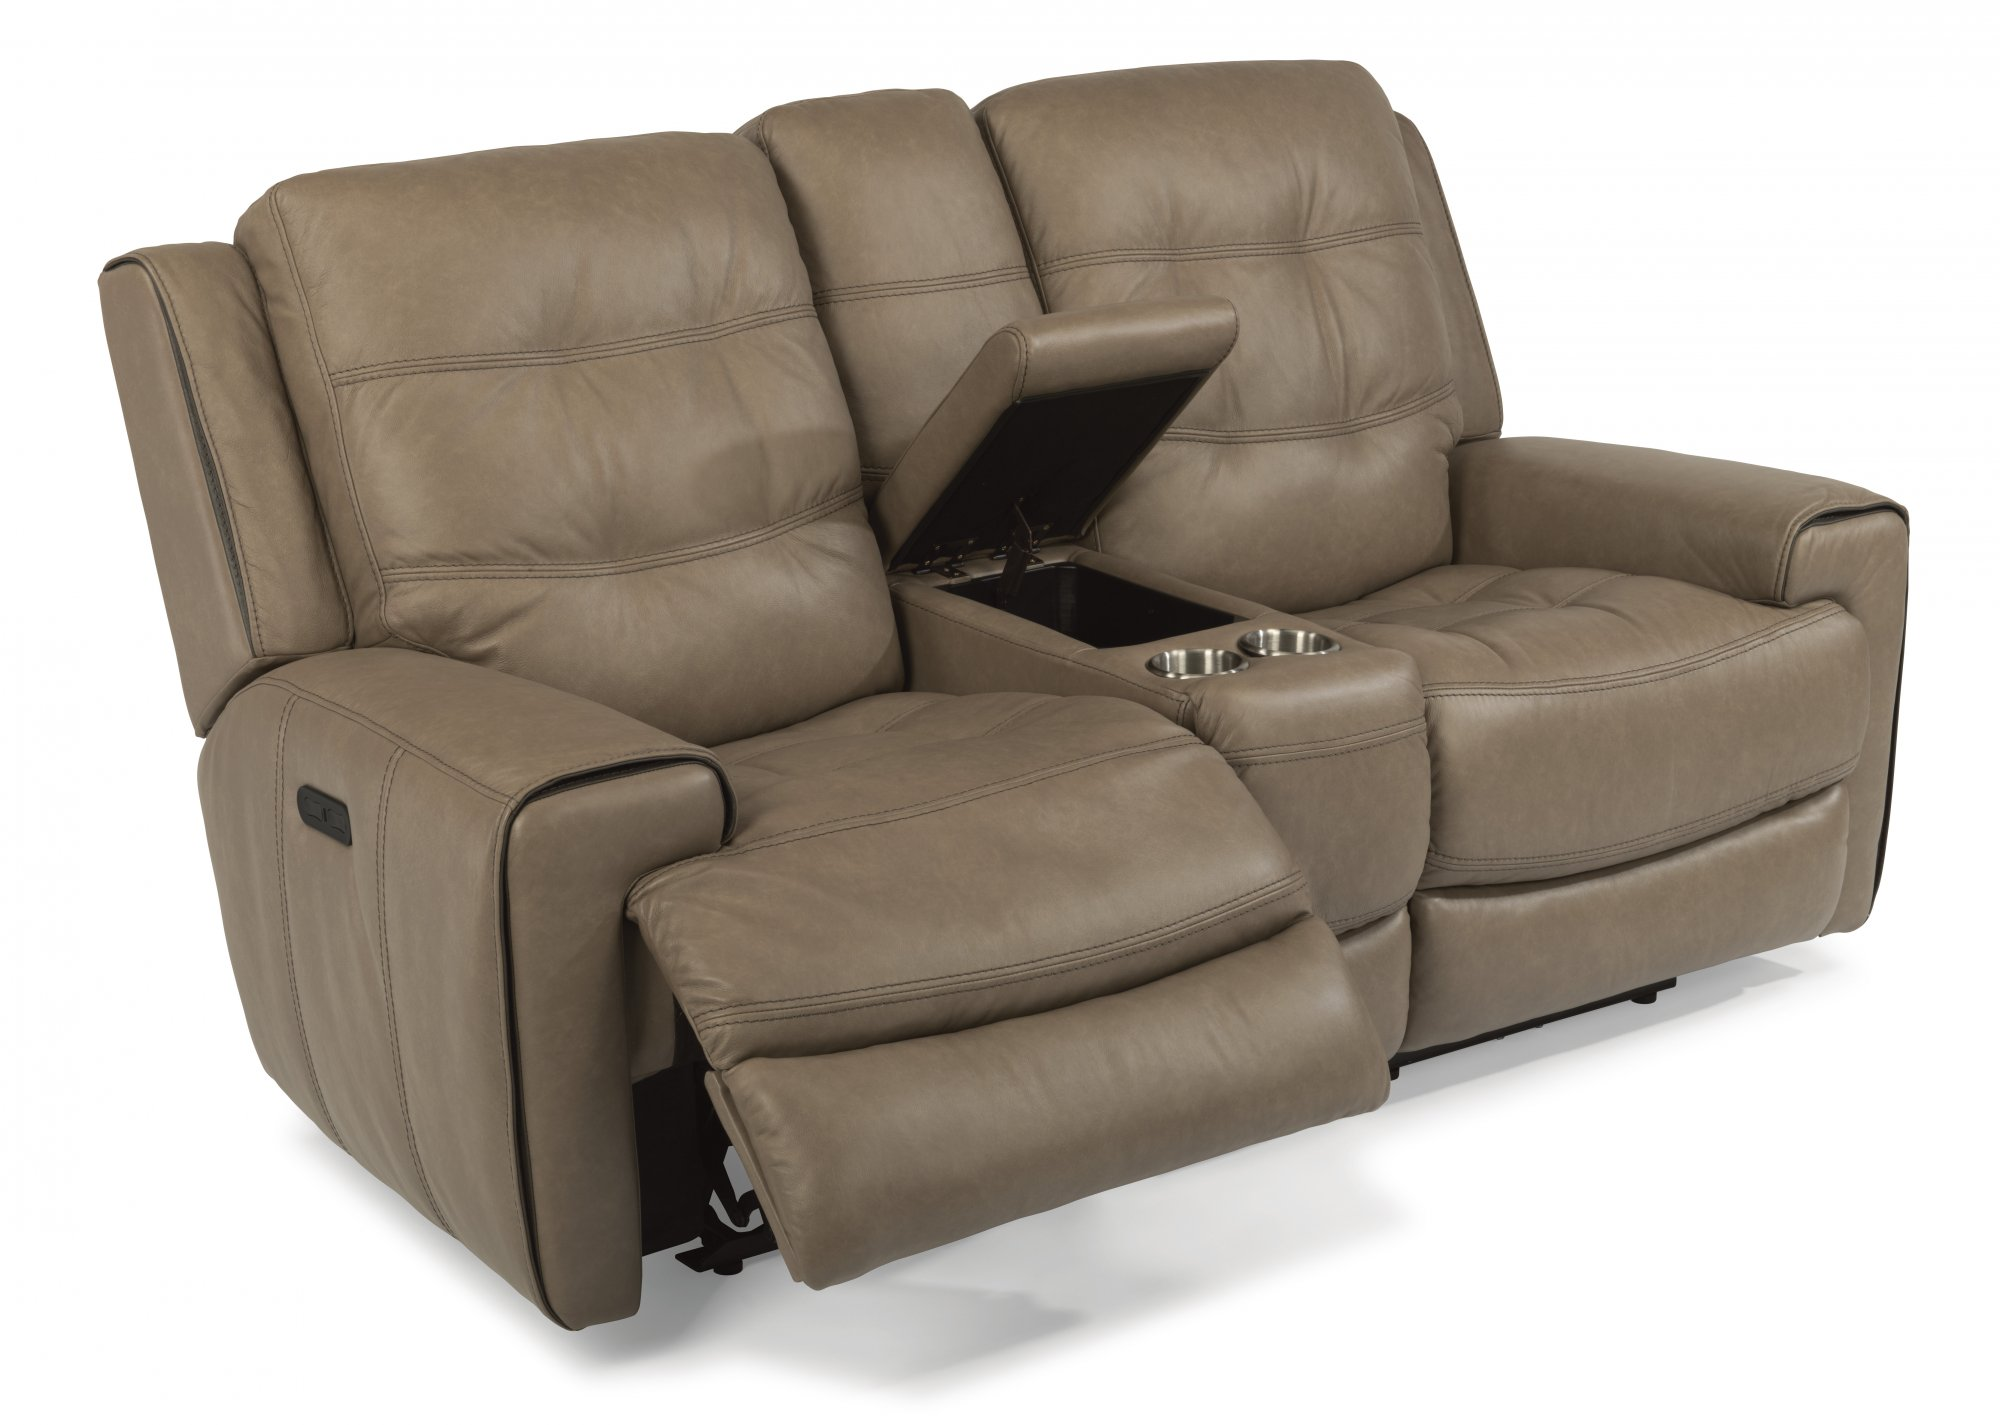 Leather Power Reclining Loveseat with Console and Power Headrests  sc 1 st  Flexsteel & Sofas and Loveseats | Reclining Sofas and Sleepers | Flexsteel islam-shia.org